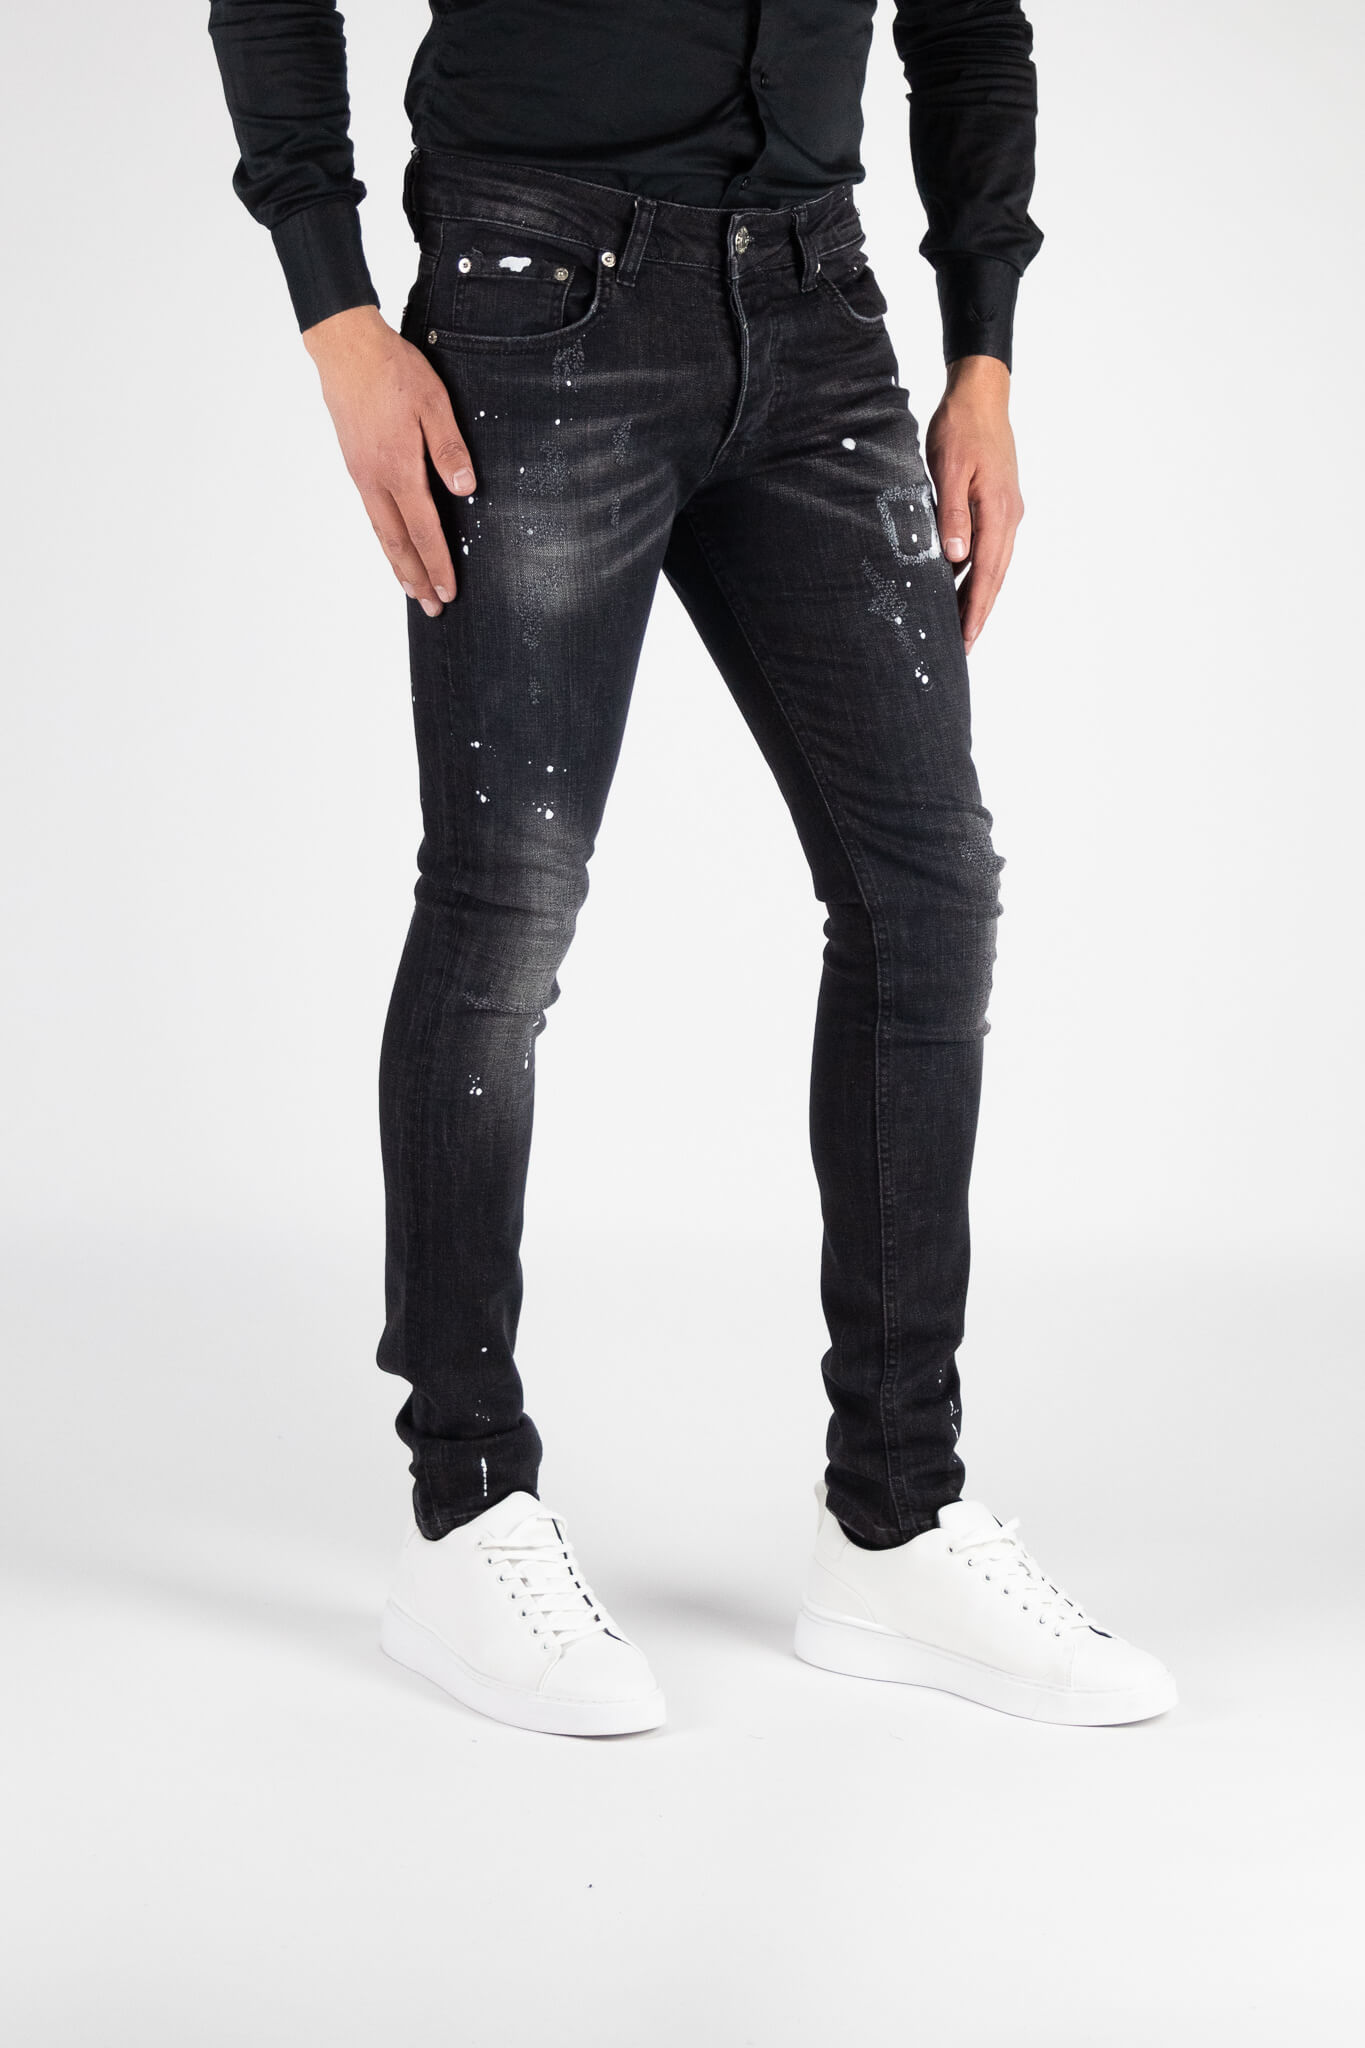 Chaves Black Jeans 2